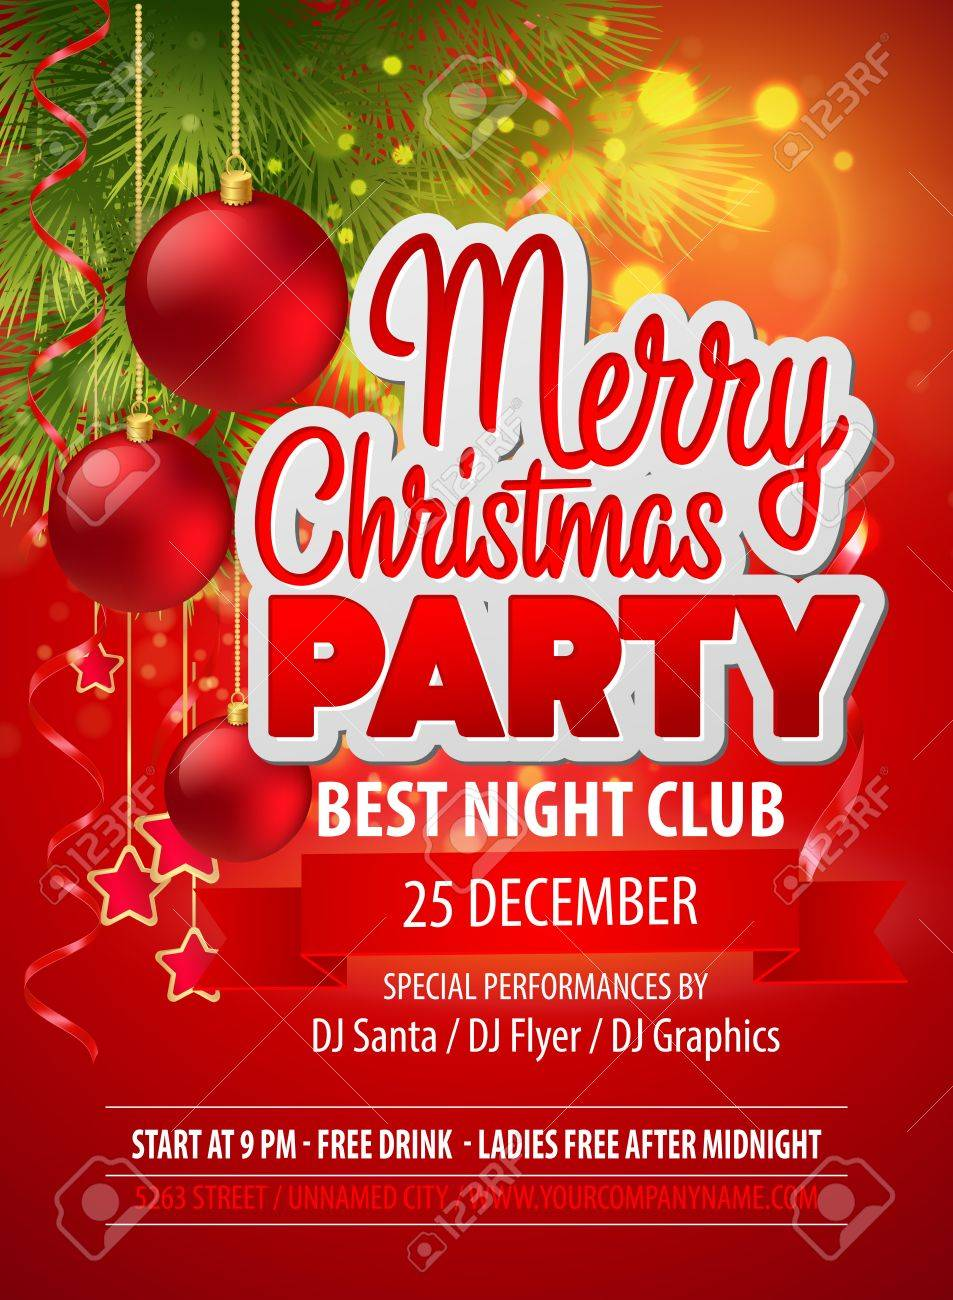 Flyer Noel Christmas Party Flyer Royalty Free Cliparts, Vectors, And Stock